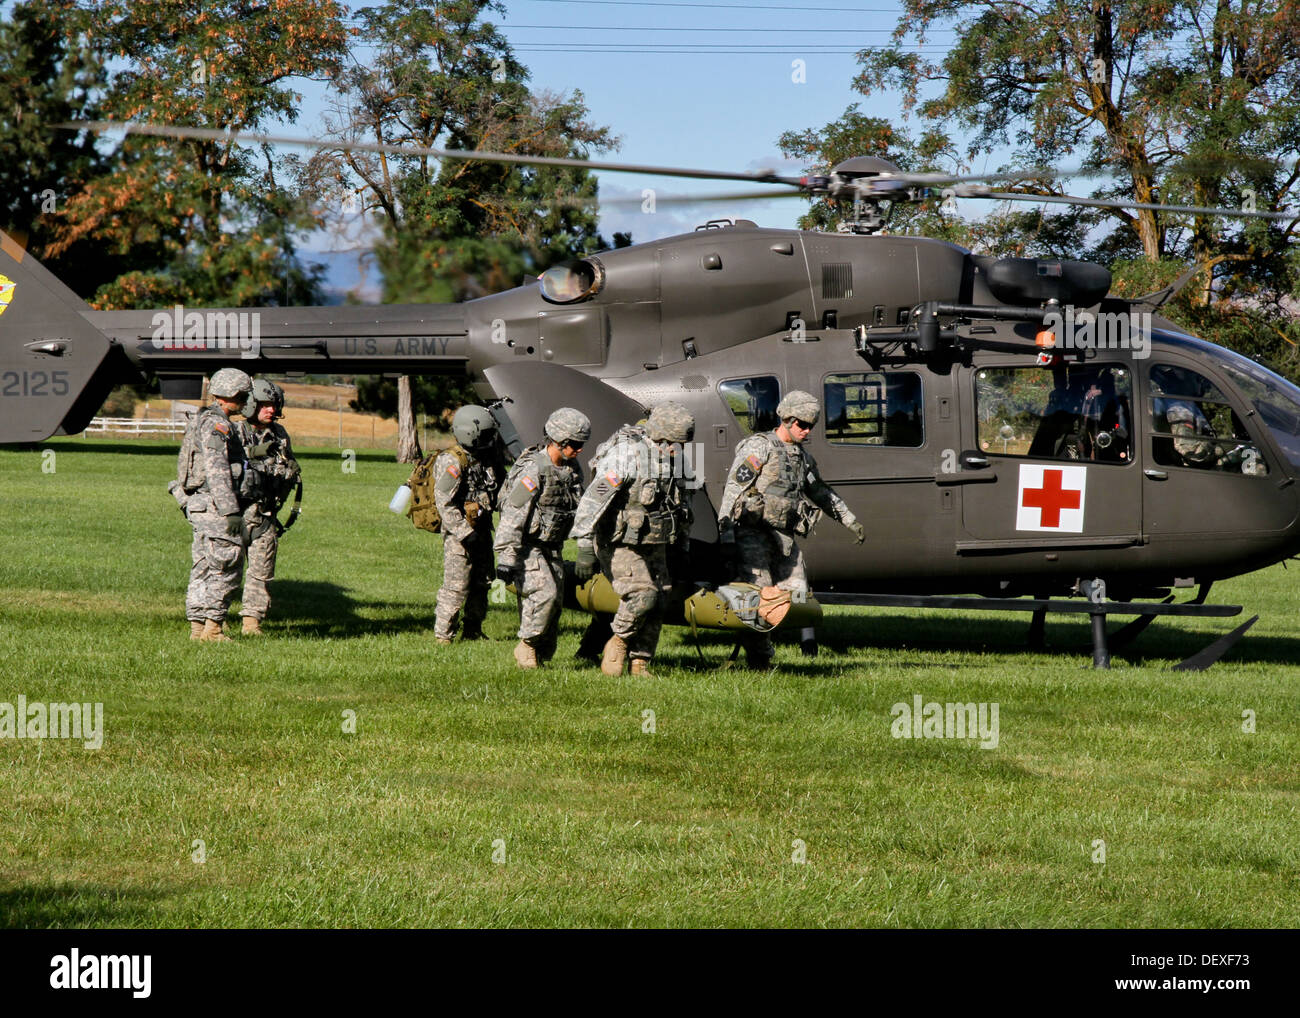 uh 72 lakota helicopter with Stock Photo Yakima Training Center Wash Us Army Medics And Japanese Ground Self 60818999 on Stock Photo Yakima Training Center Wash Us Army Medics And Japanese Ground Self 60818999 additionally File a u s  army uh 72a lakota helicopter with the colorado army national guard prepares to take off after refueling during firefighting efforts in colorado springs  colo   june 14  2013 130614 F Zj145 900 in addition UH 72 Lakota moreover Watch furthermore Eurocopter UH 72 Lakota.